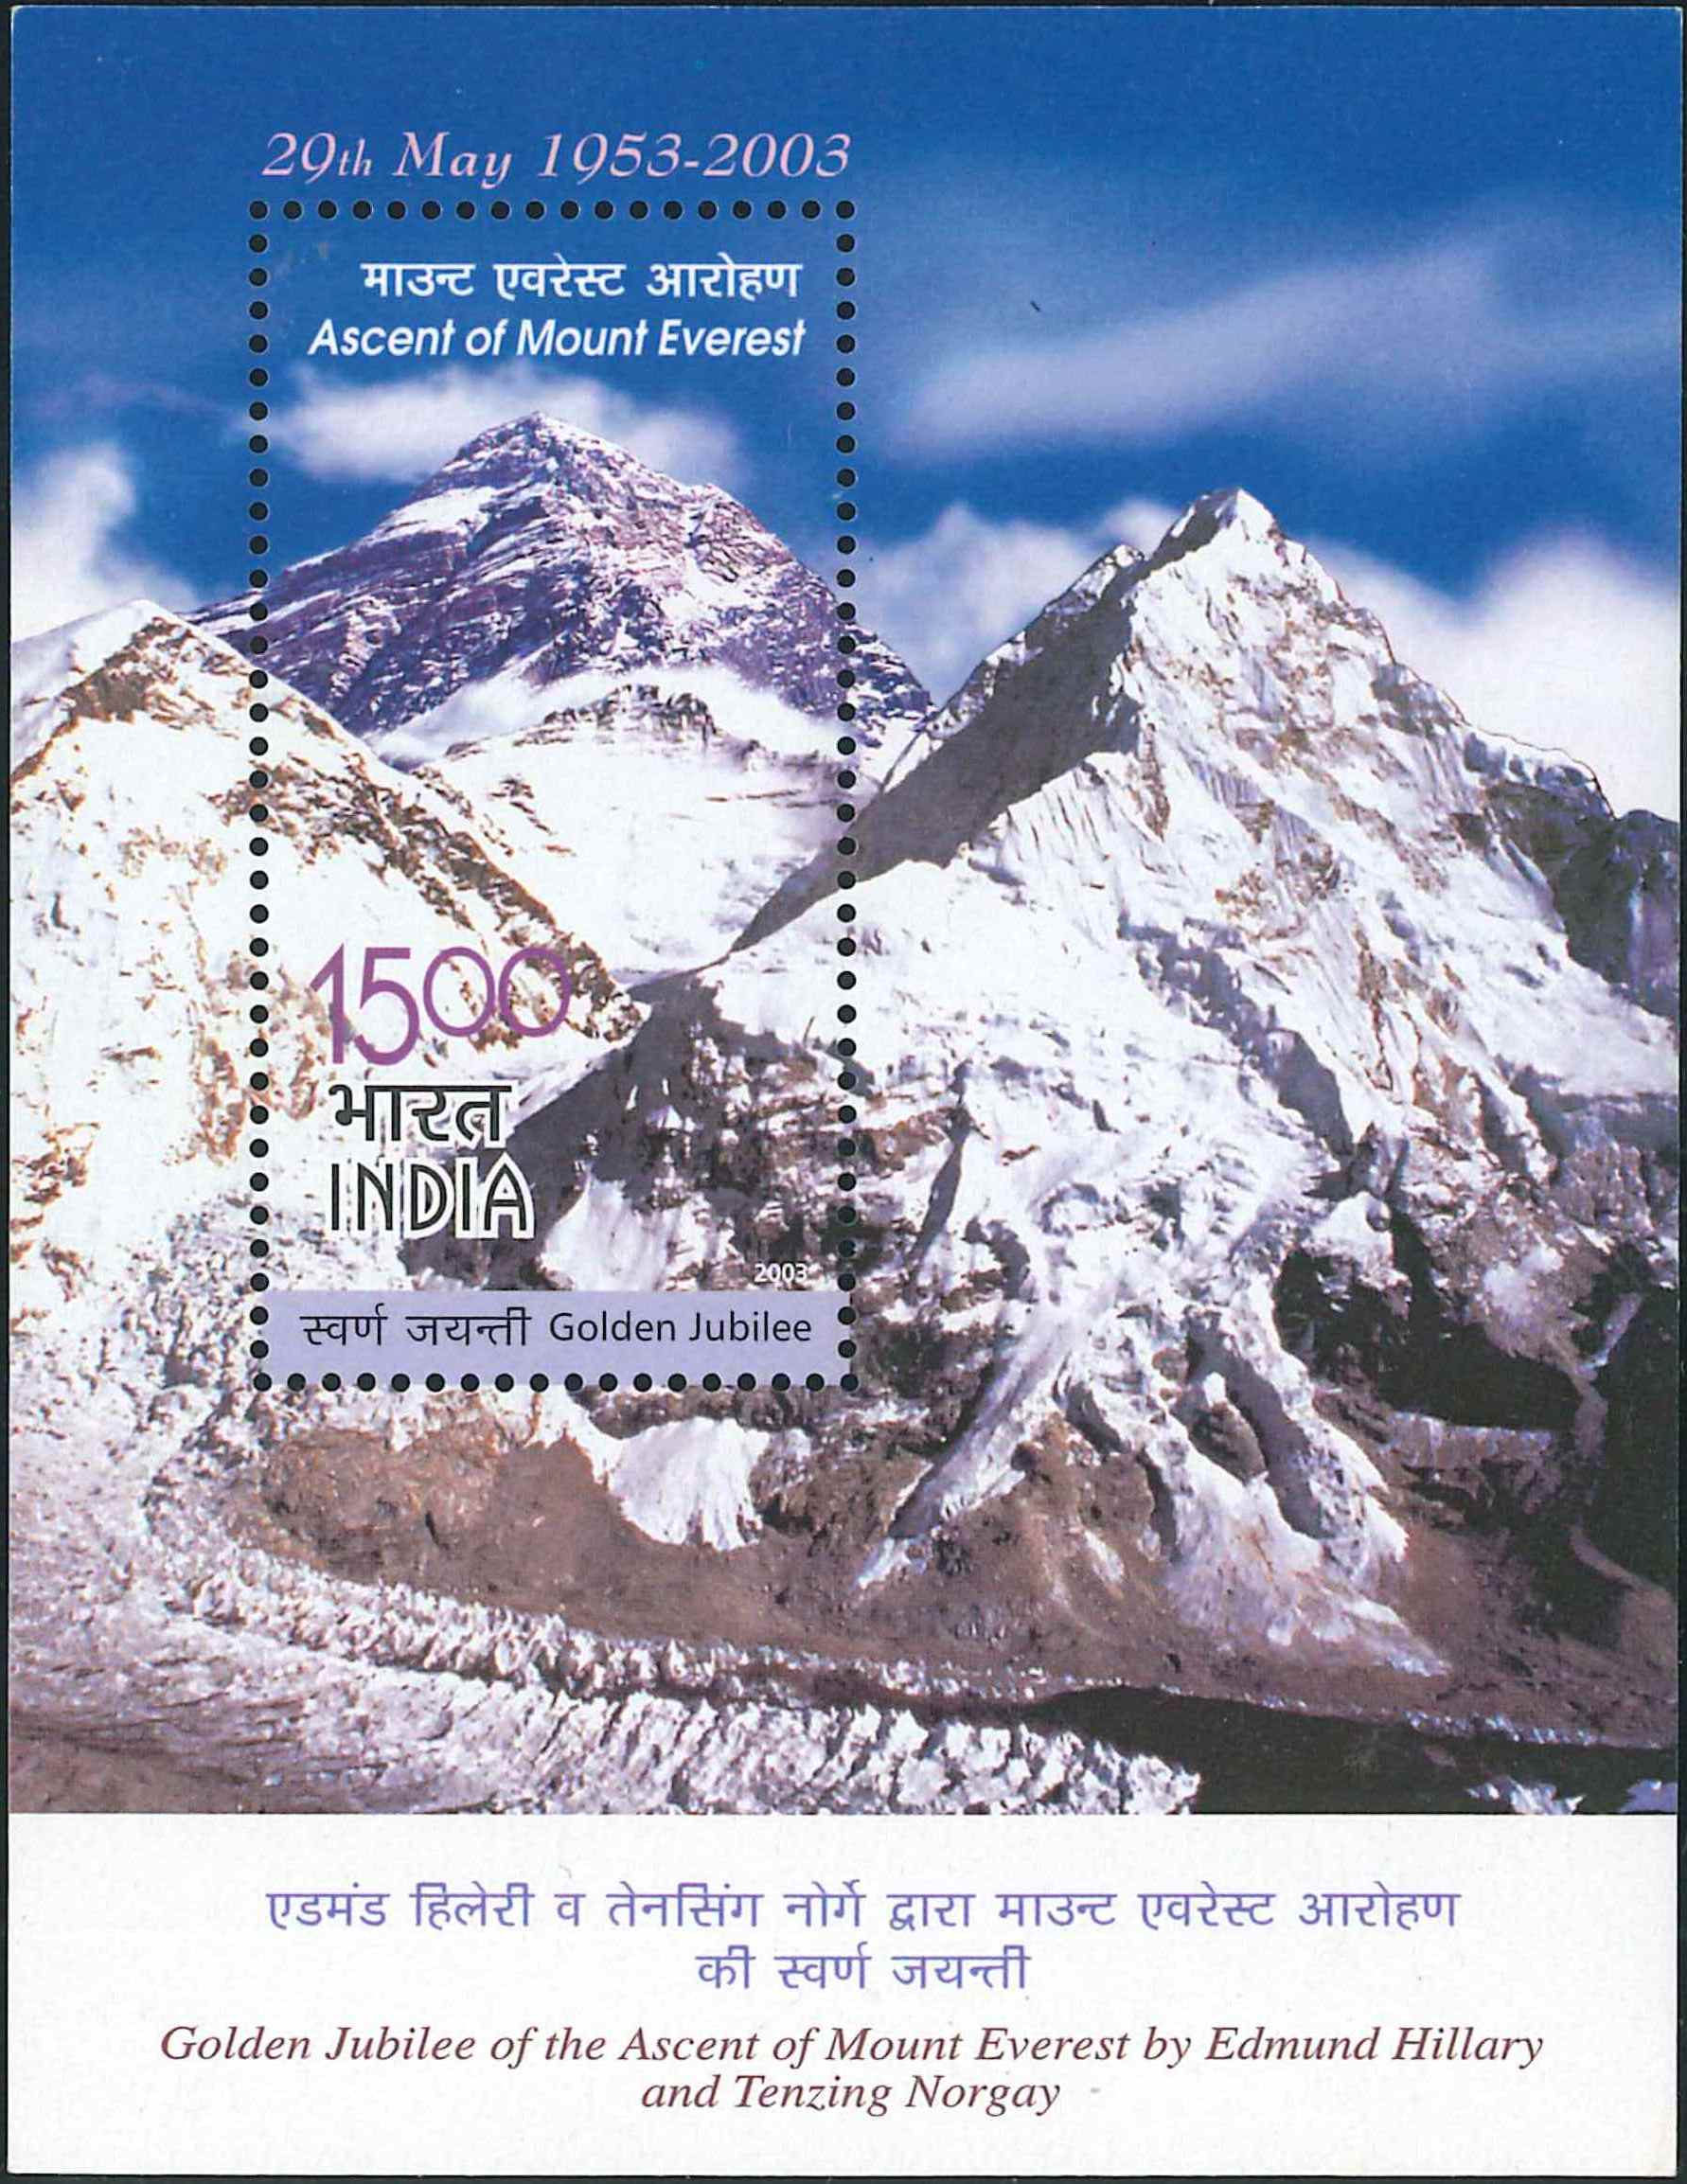 1974 Ascent of Mount Everest [India Miniature Sheet 2003]